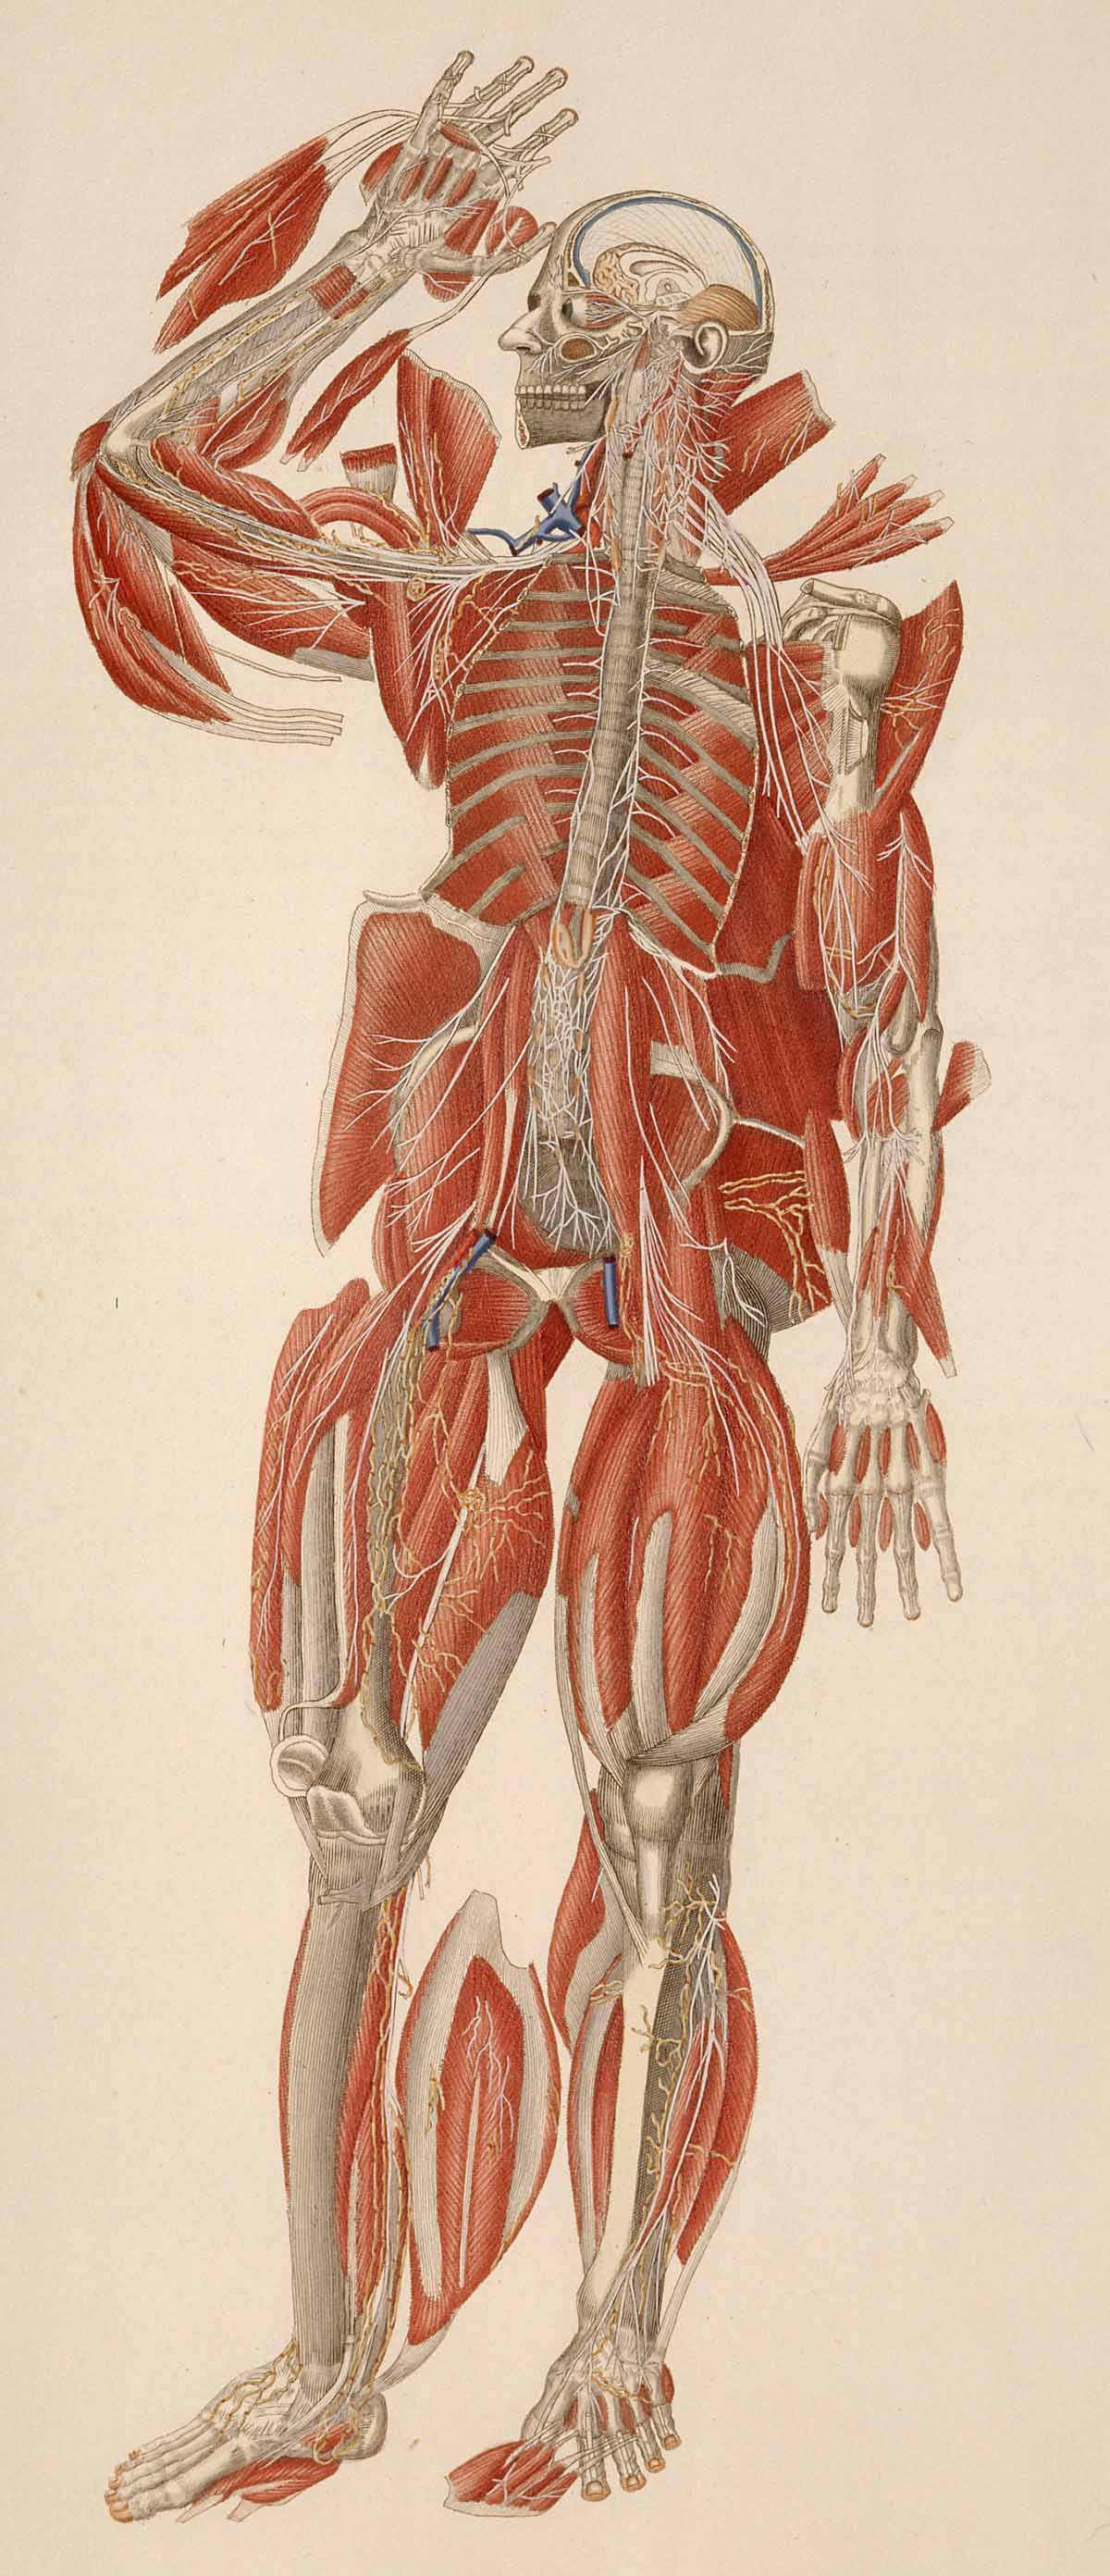 Dream Anatomy: Gallery: Mascagni and Serantoni: Anatomia universale...